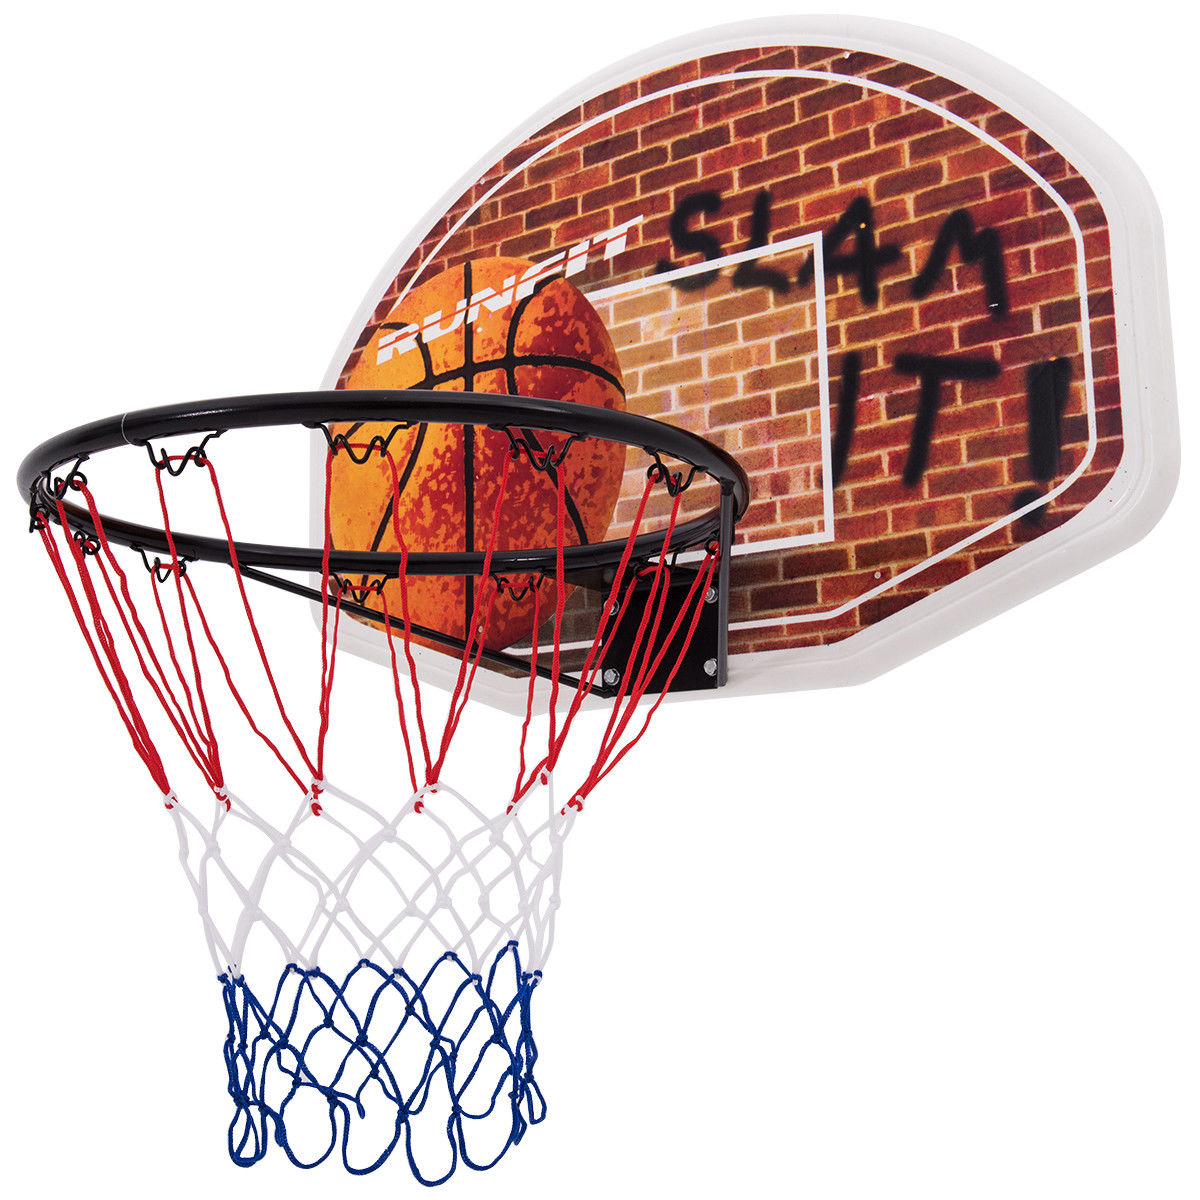 wall mounted Basketball Ring Rim with Net and Fixings outdoor kids fun sports